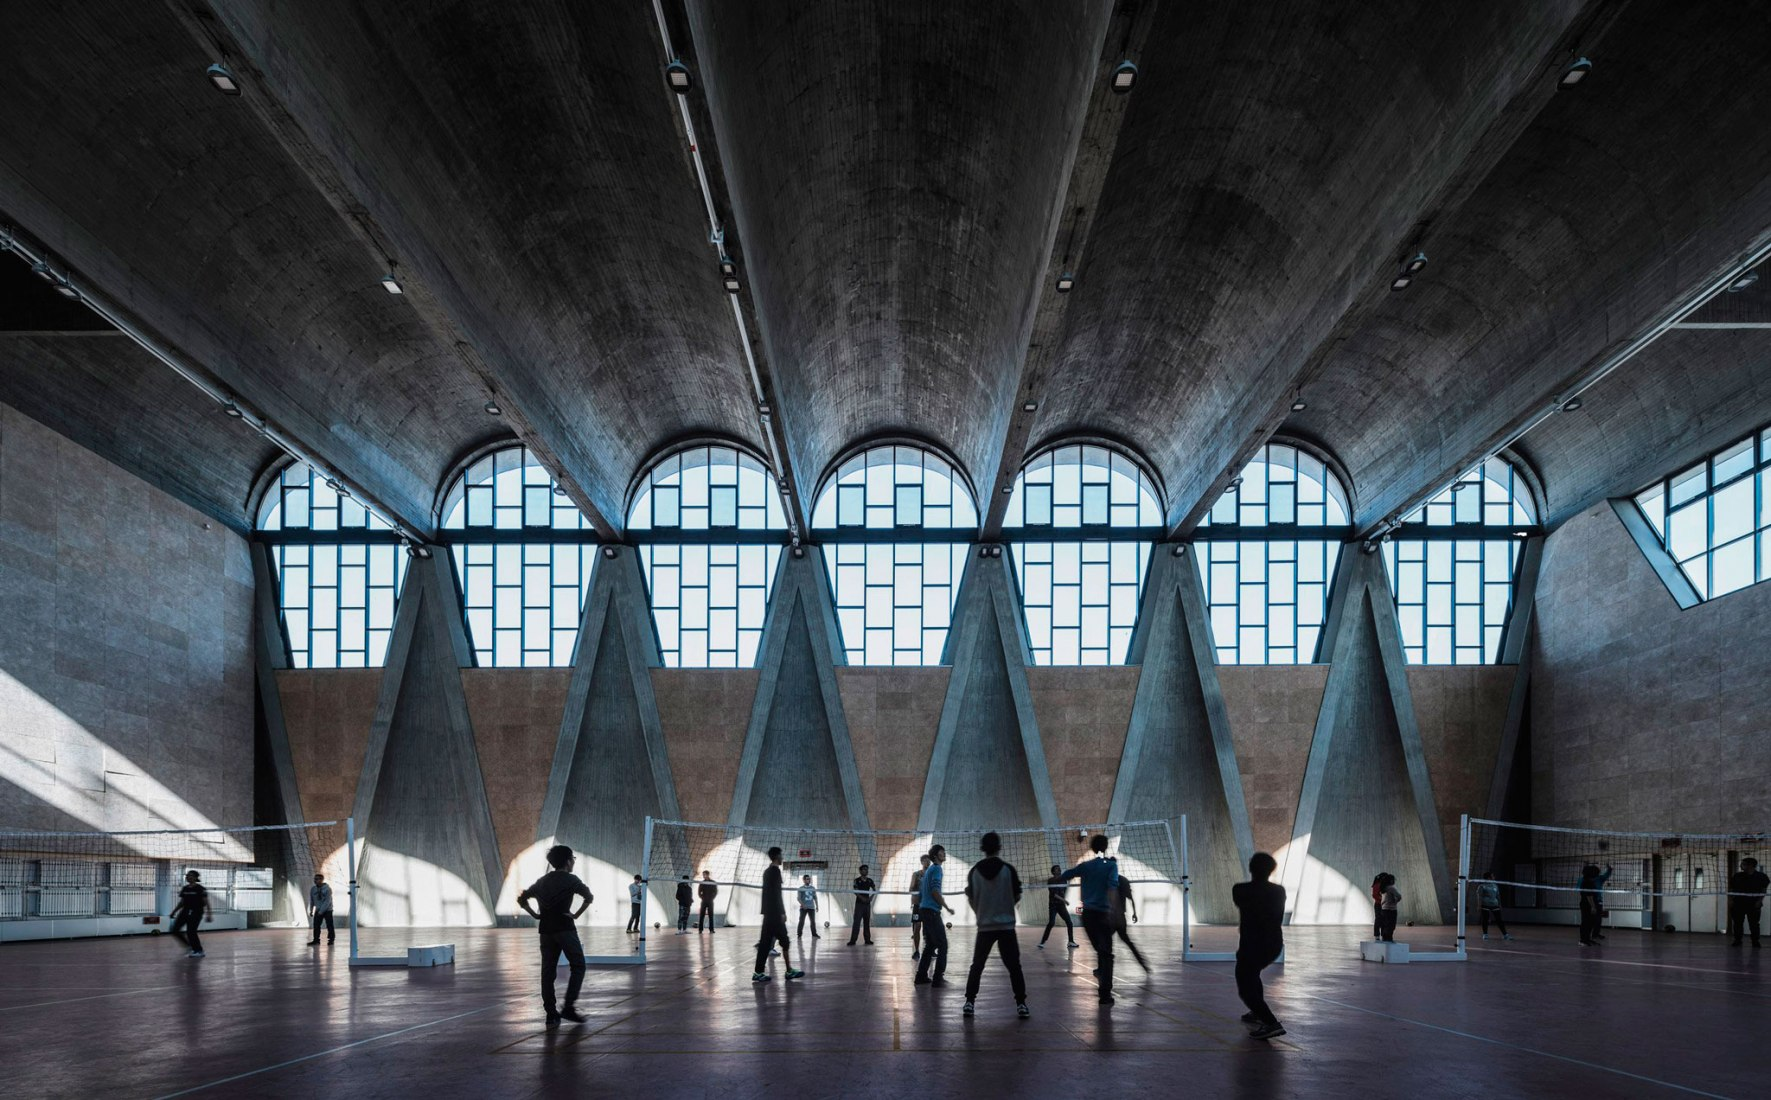 Buildings in use: Gymnasium of the New Campus of Tianjin University, China, by Atelier Li Xinggang, photographed by Terrence Zhang